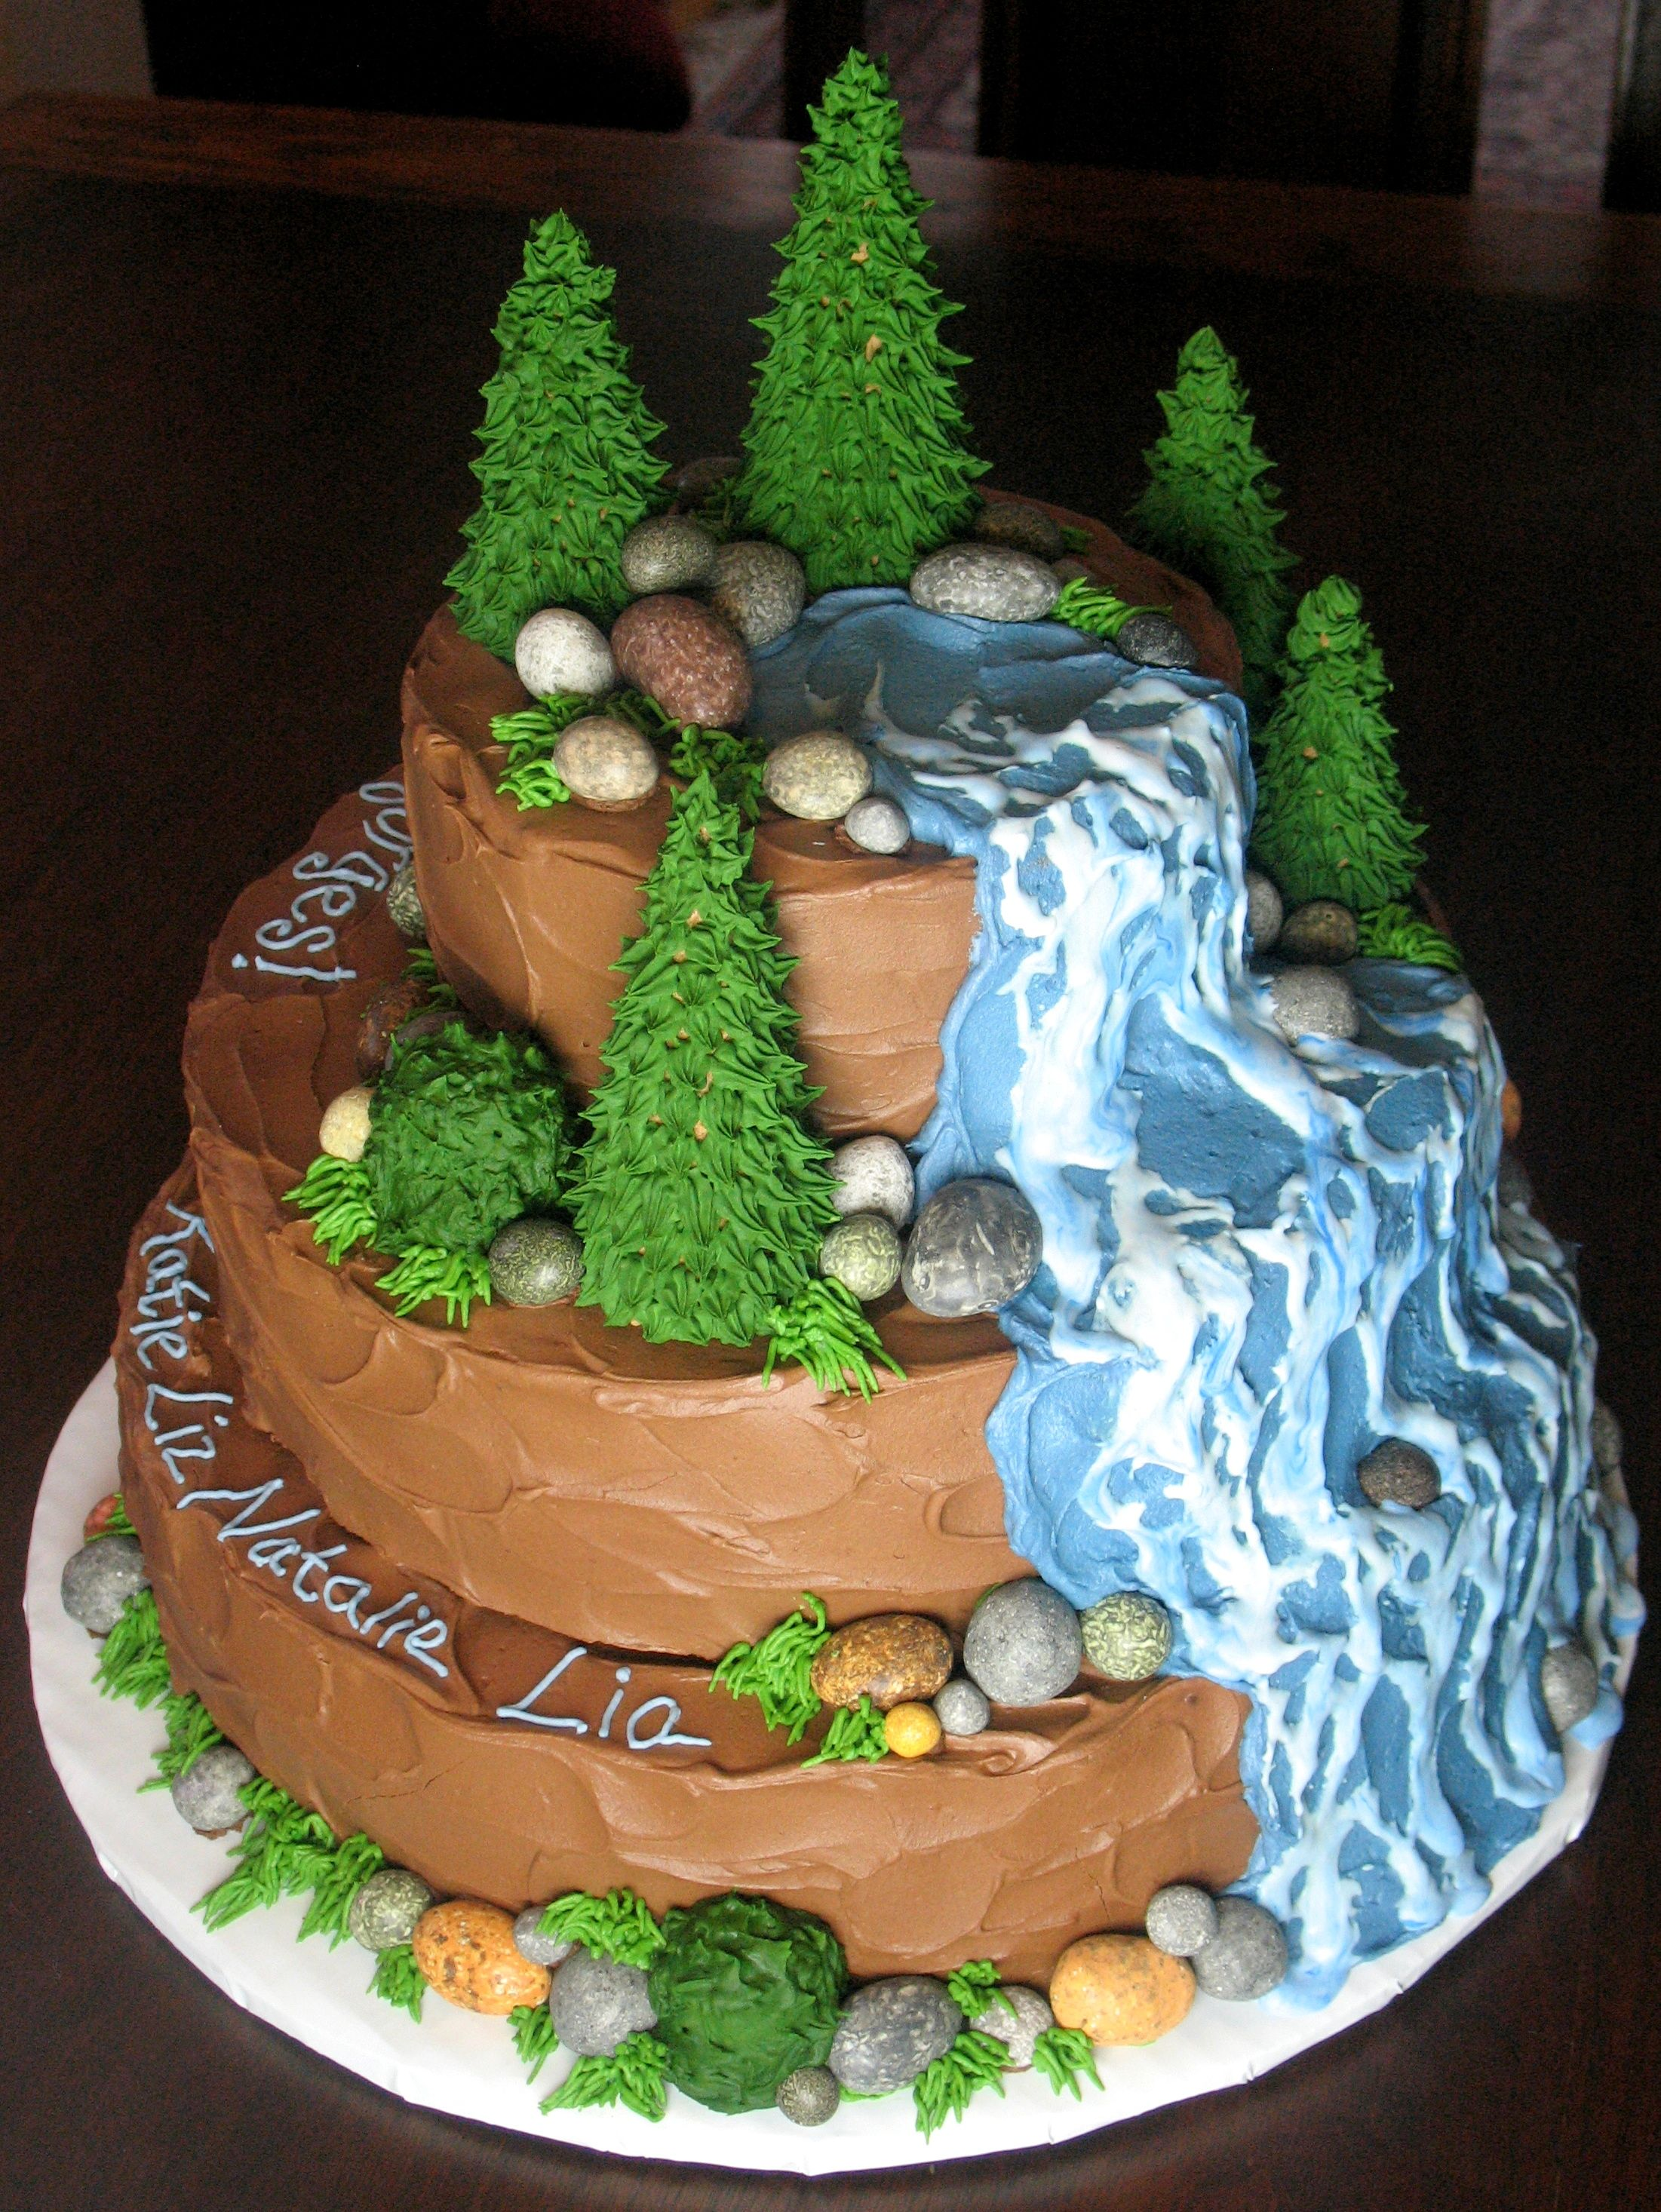 Waterfall Graduation Cake 5 20 11 Chocolate Cake With